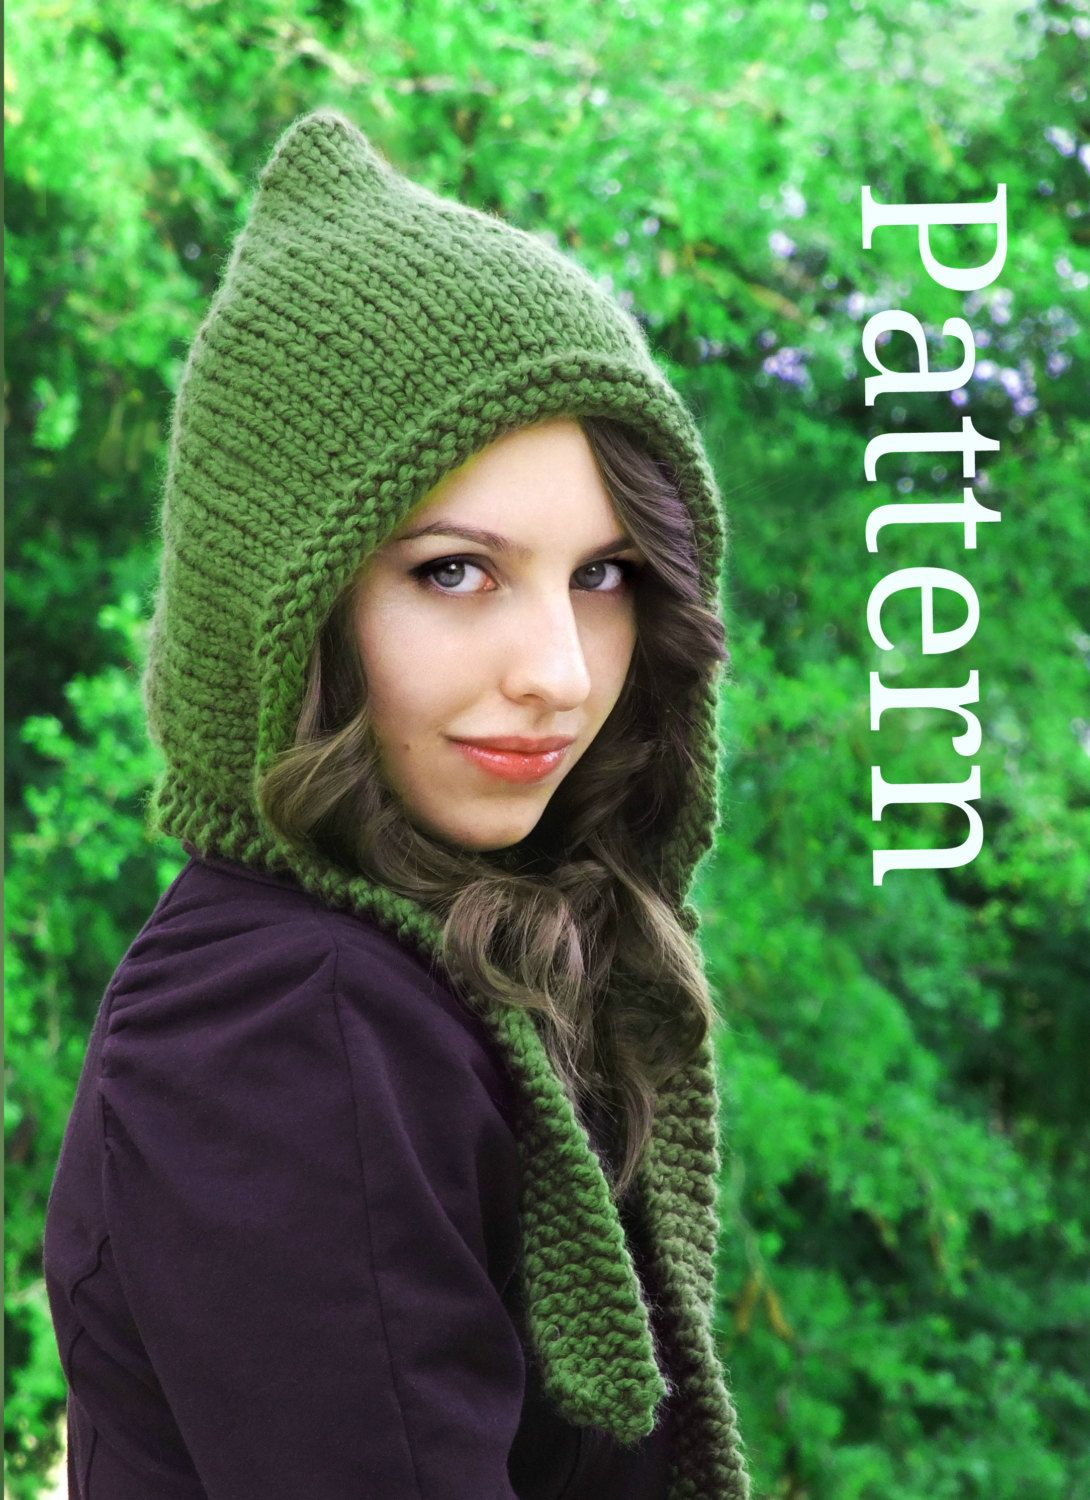 Pixie Hat Pattern Pixie Hood Pattern Knit Hat by CreatiKnit, $5.50 ...